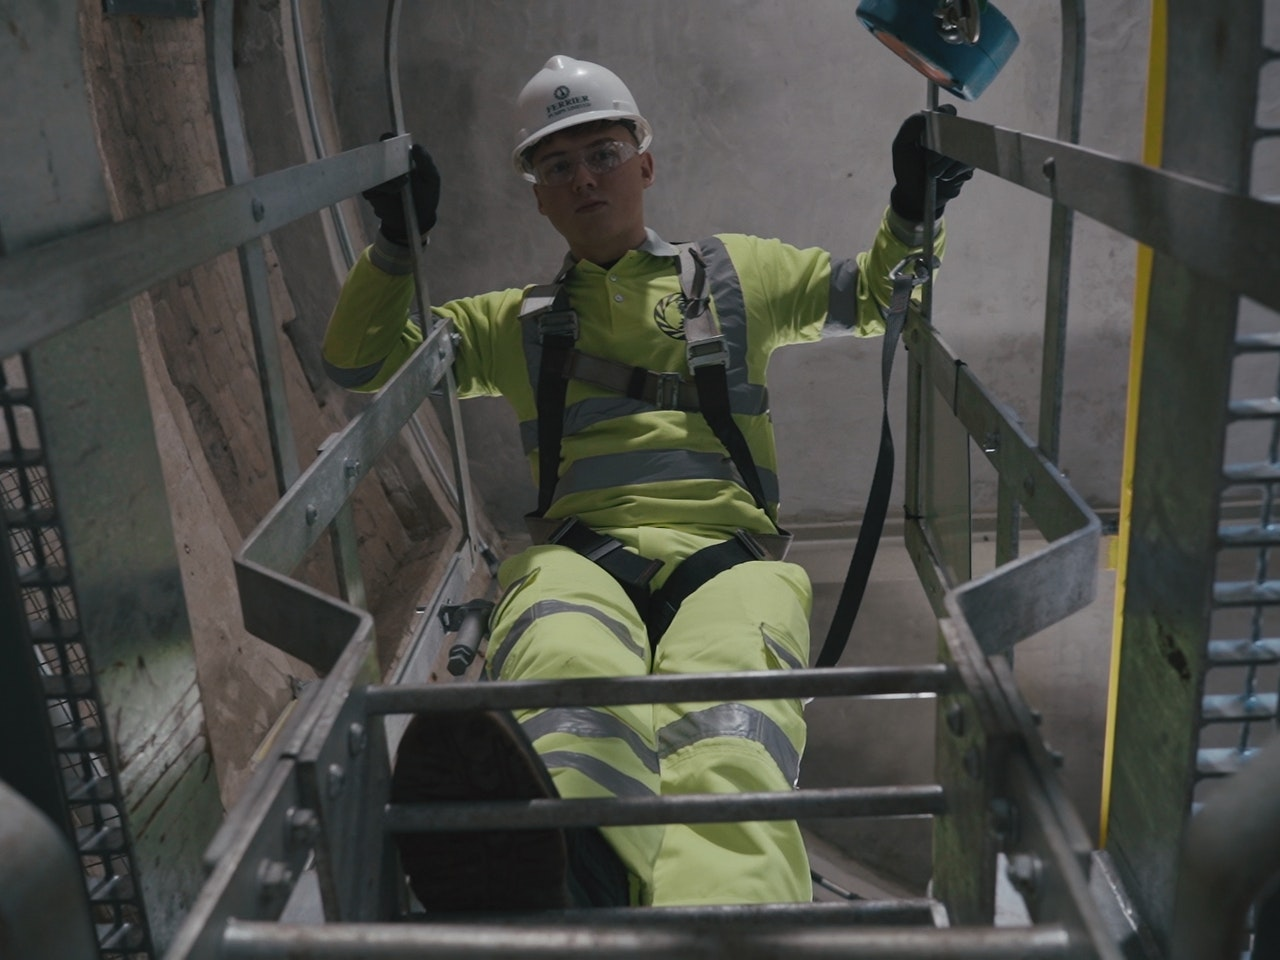 New Work: 'Ferrier Pumps' - Corporate Health & Safety Video